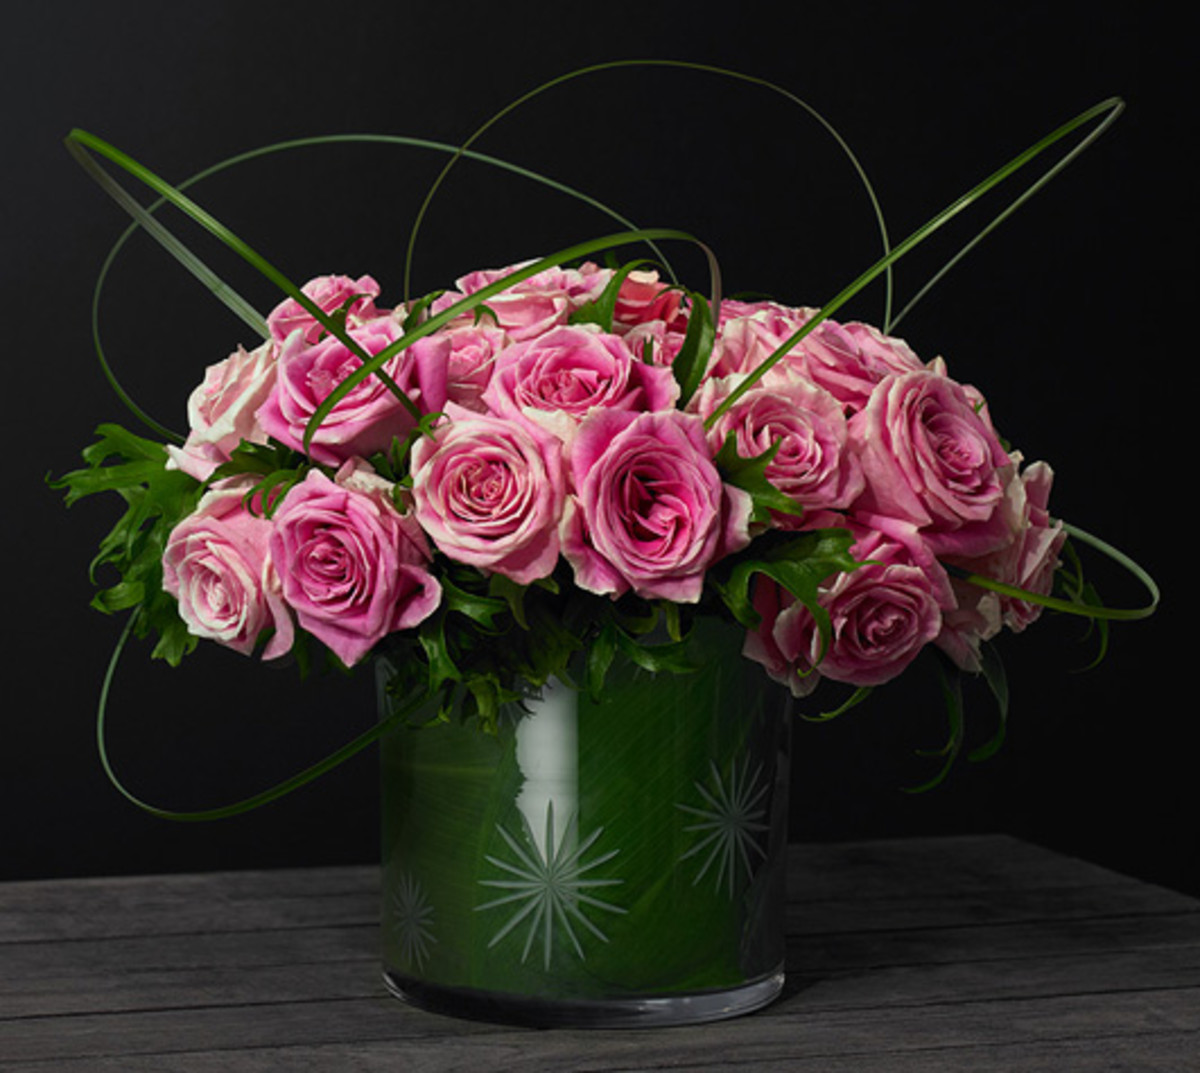 The photographer filled a Waterford crystal ice bucket with magnificent pink roses.